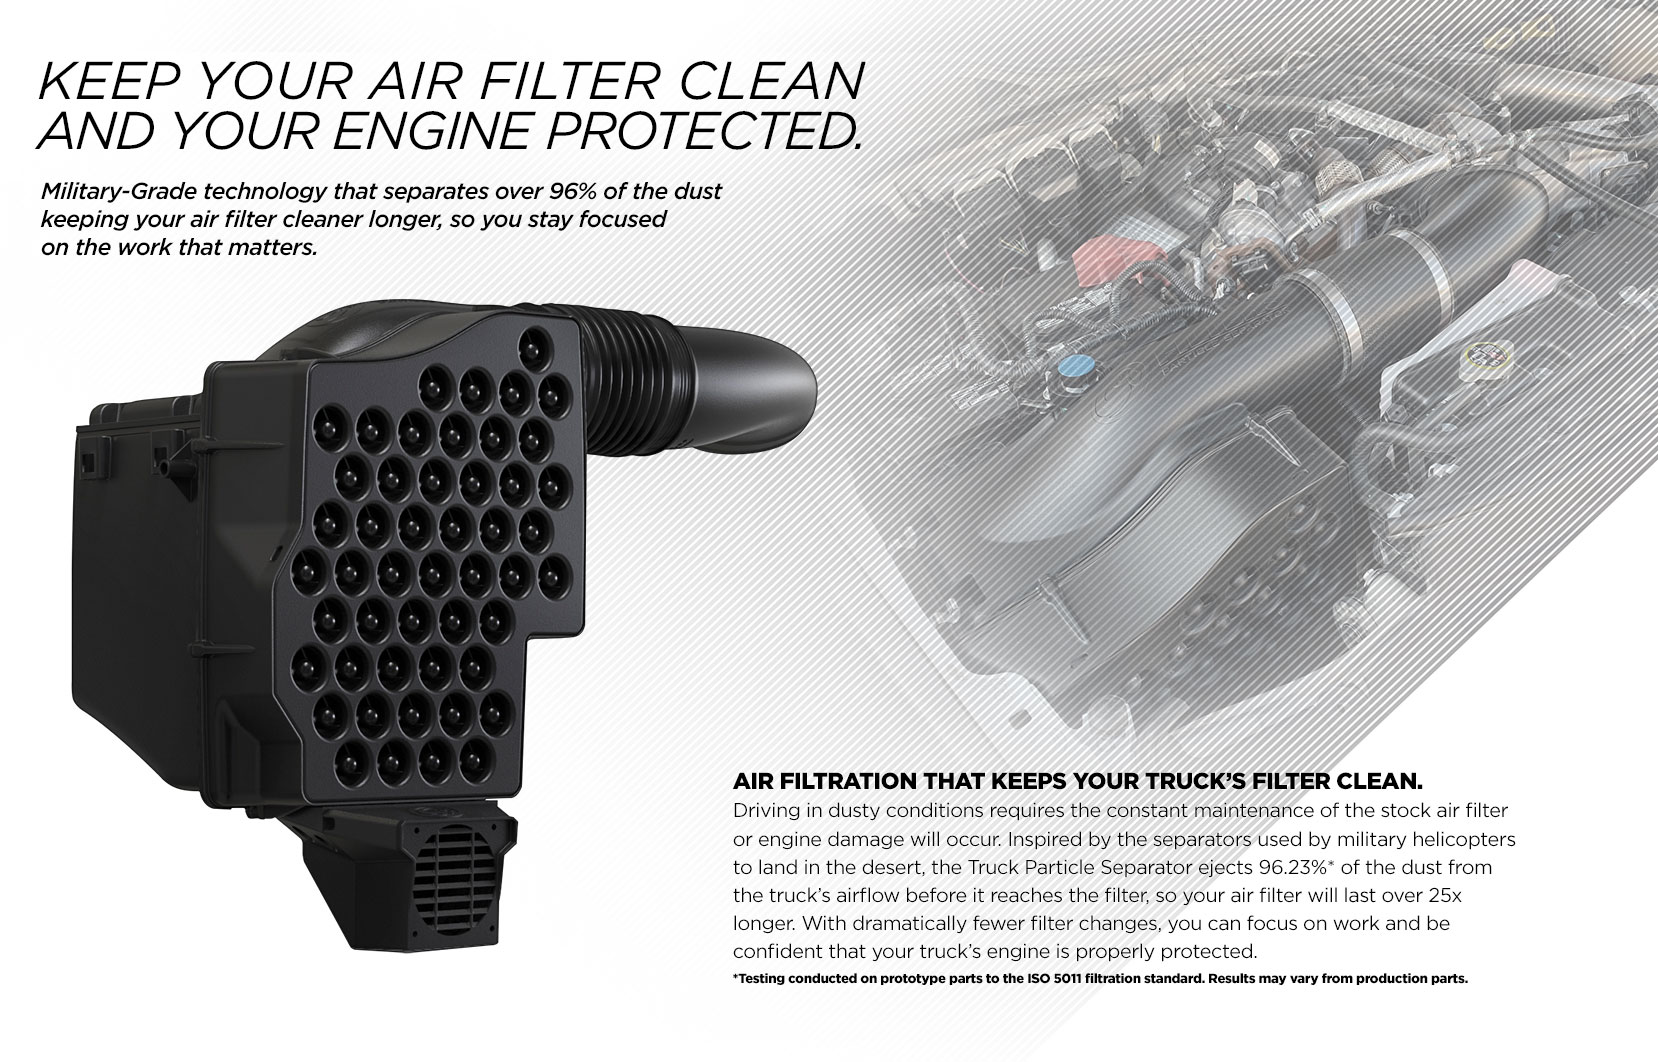 Keep Your Filter Clean